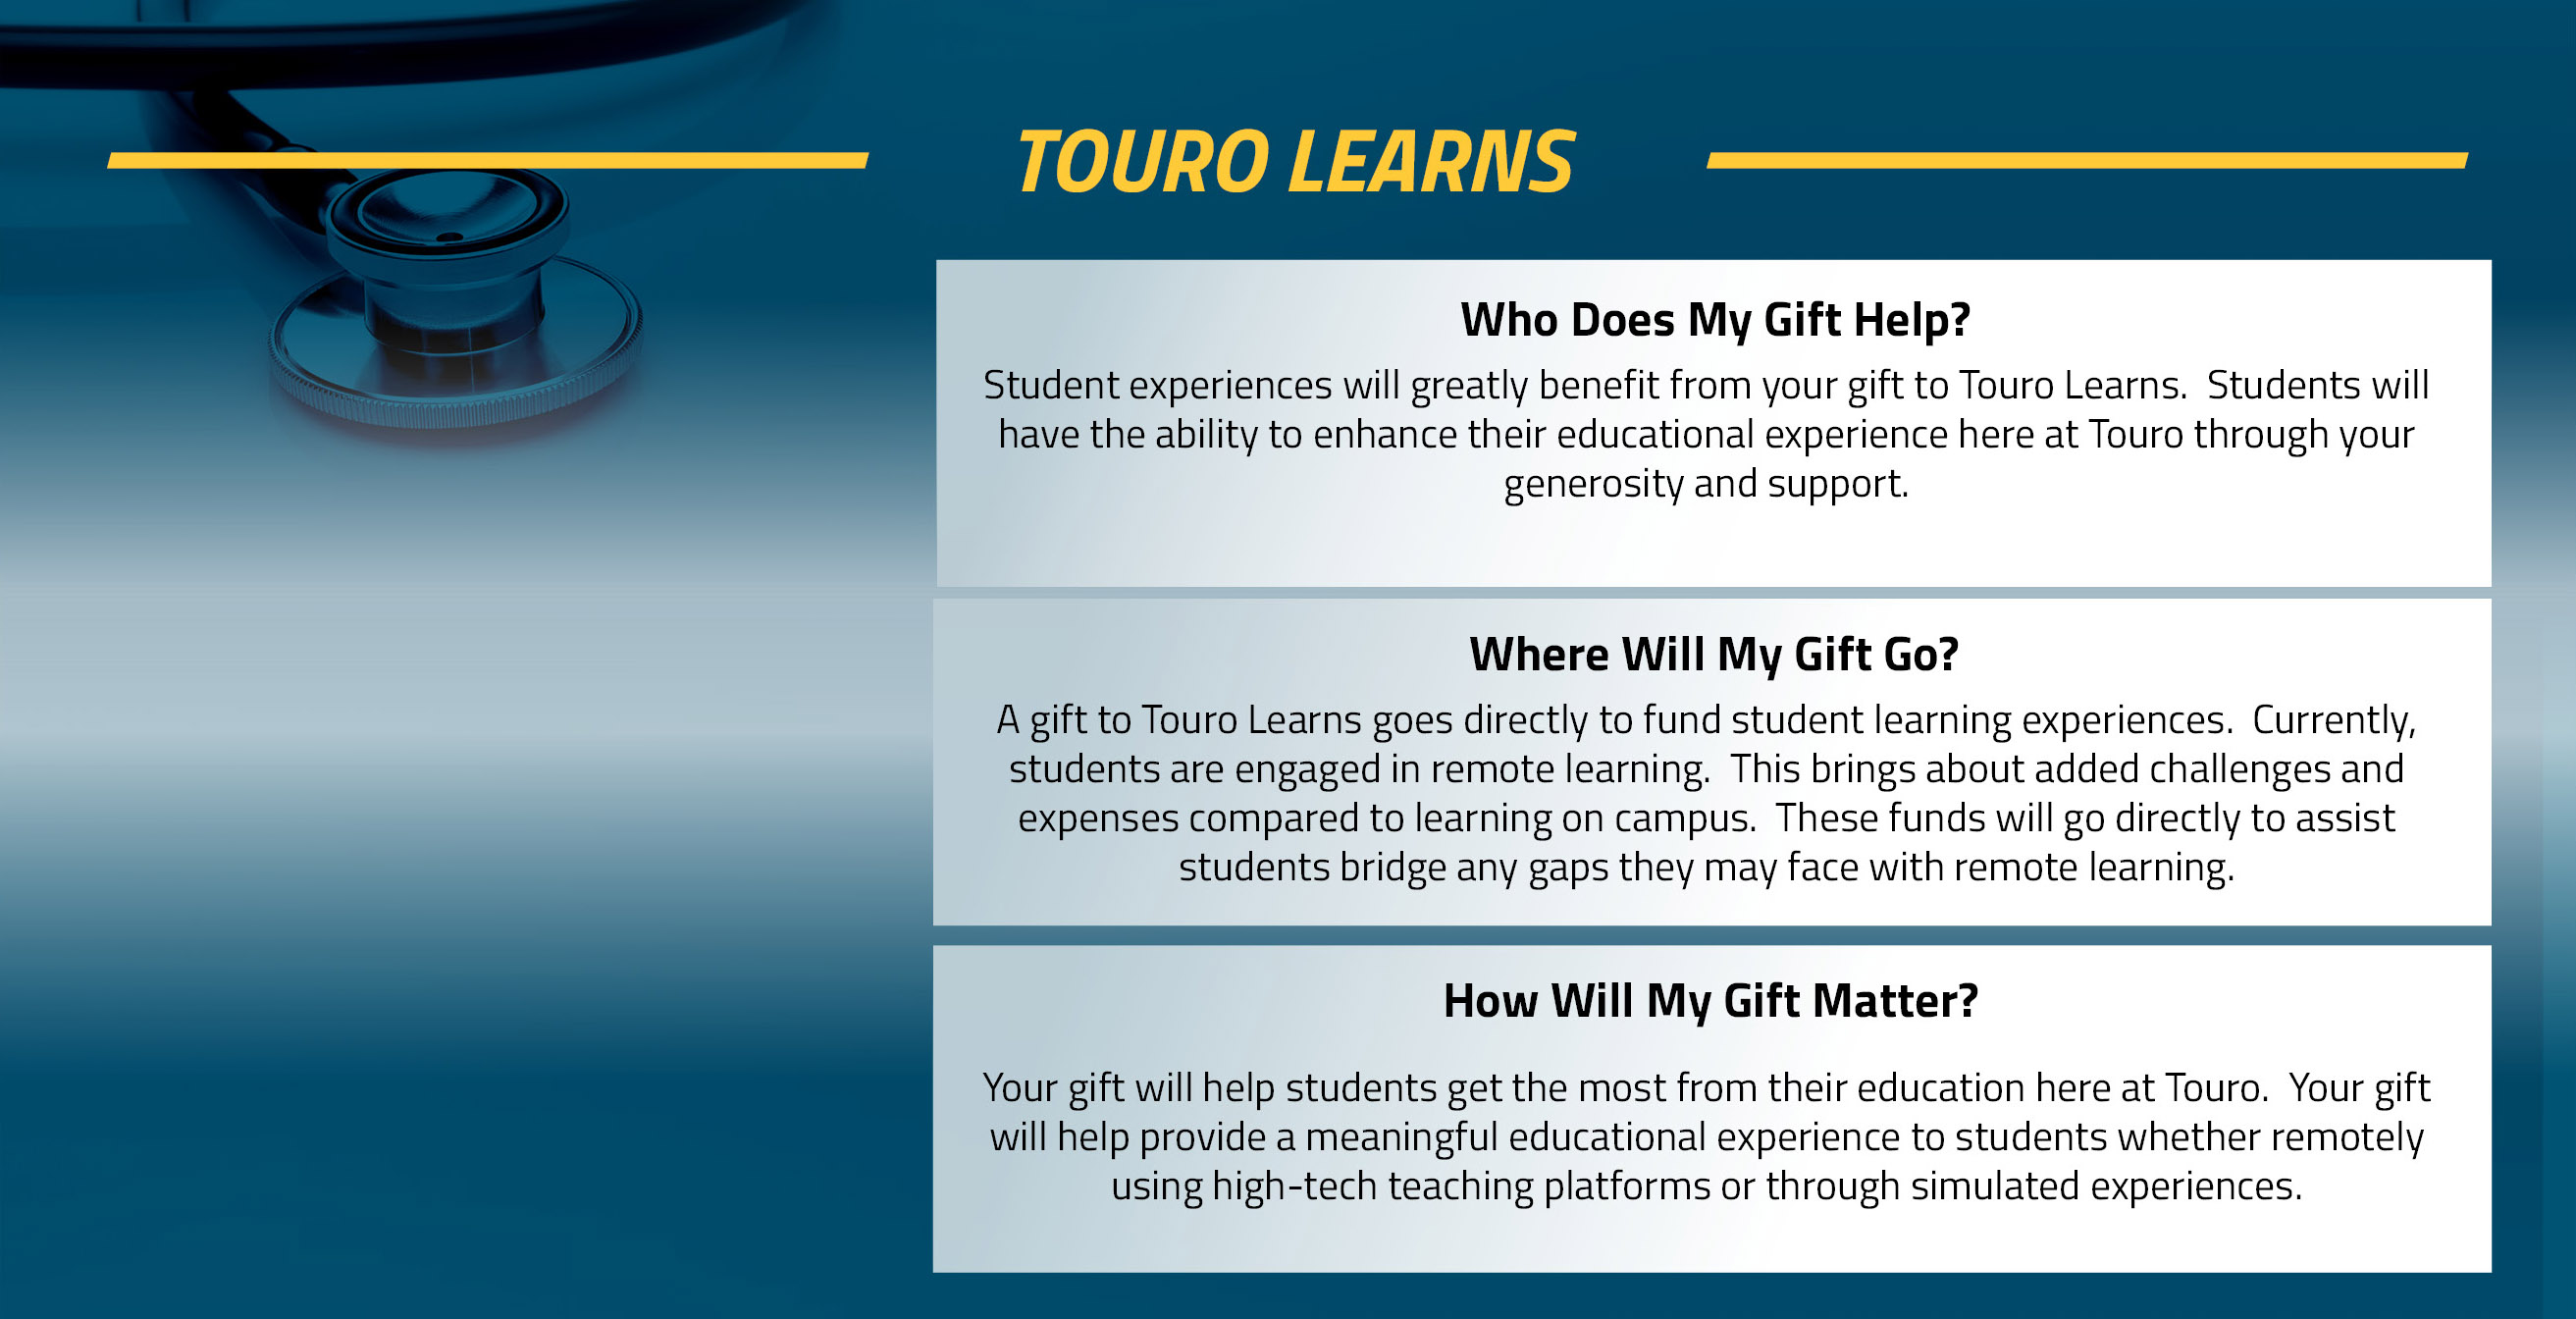 Touro Learns Fund